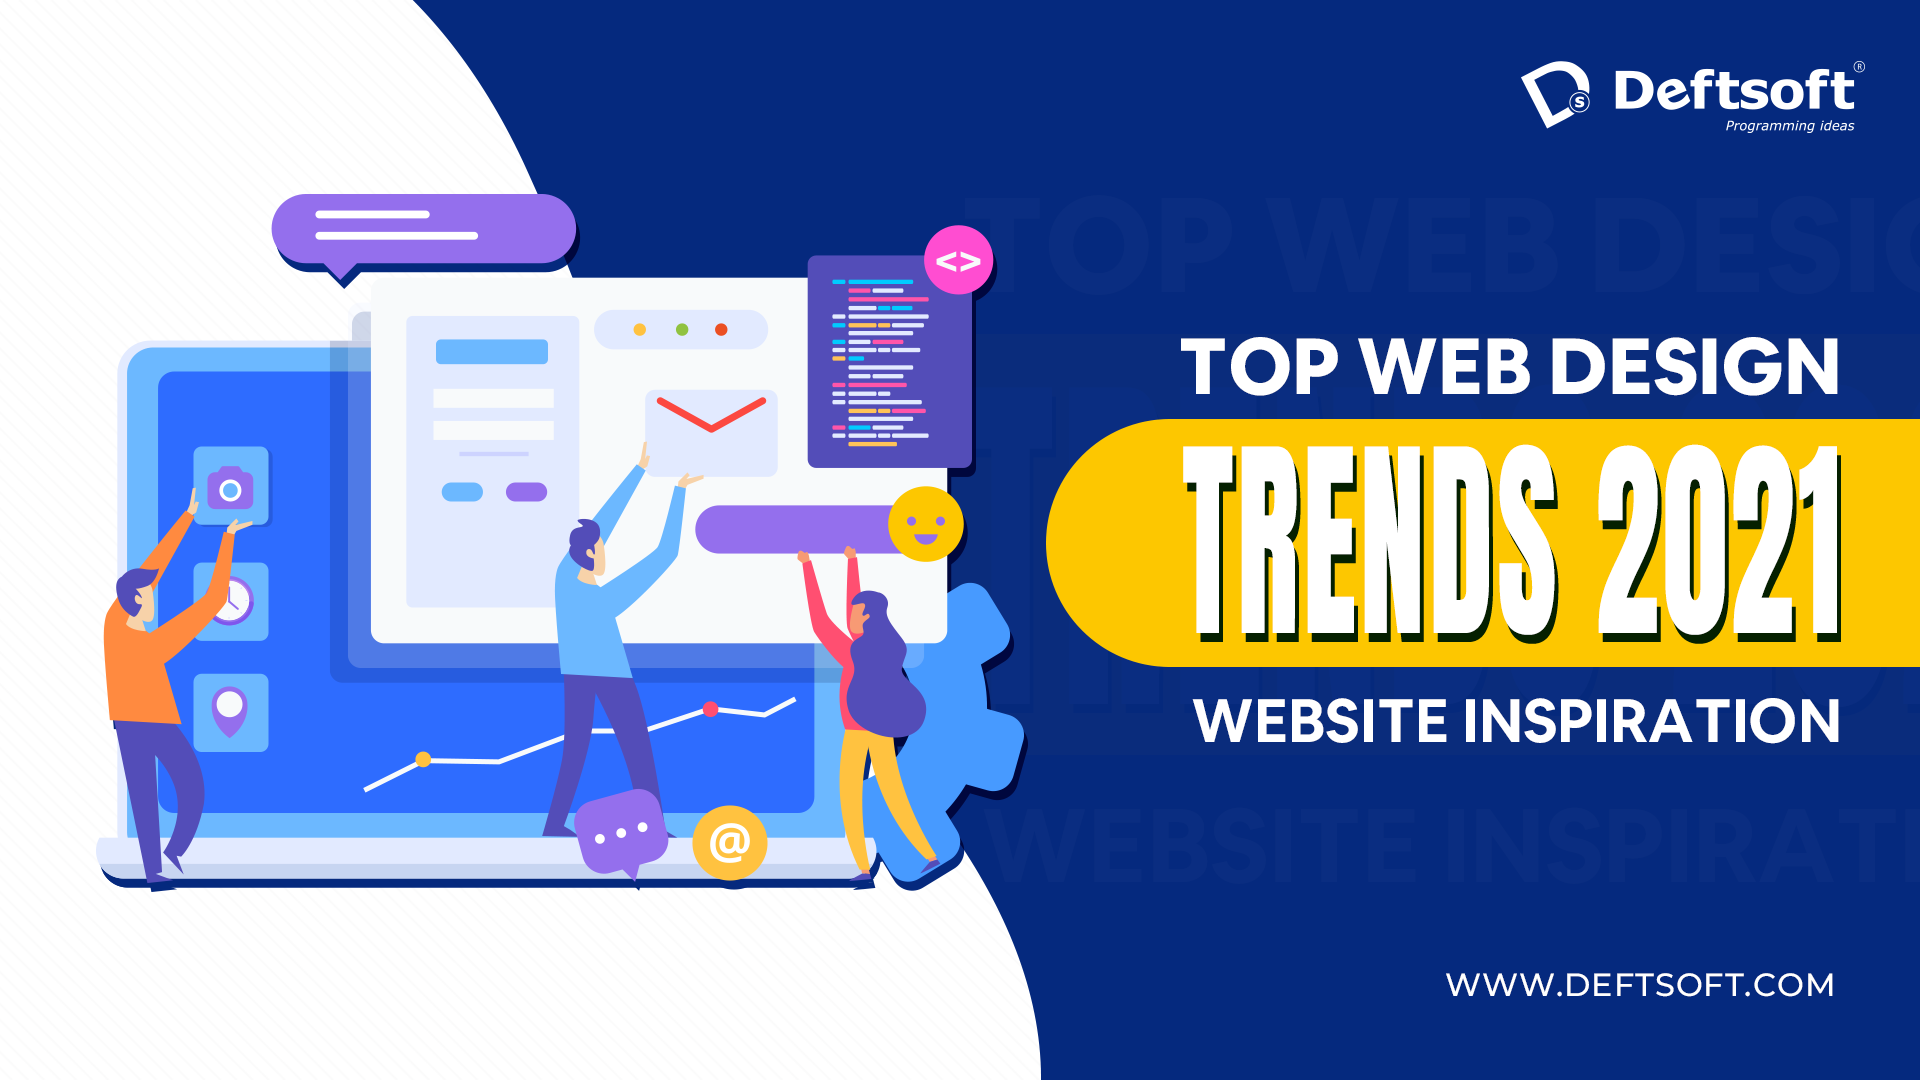 Stay Current with the Top Web Design Trends 2021